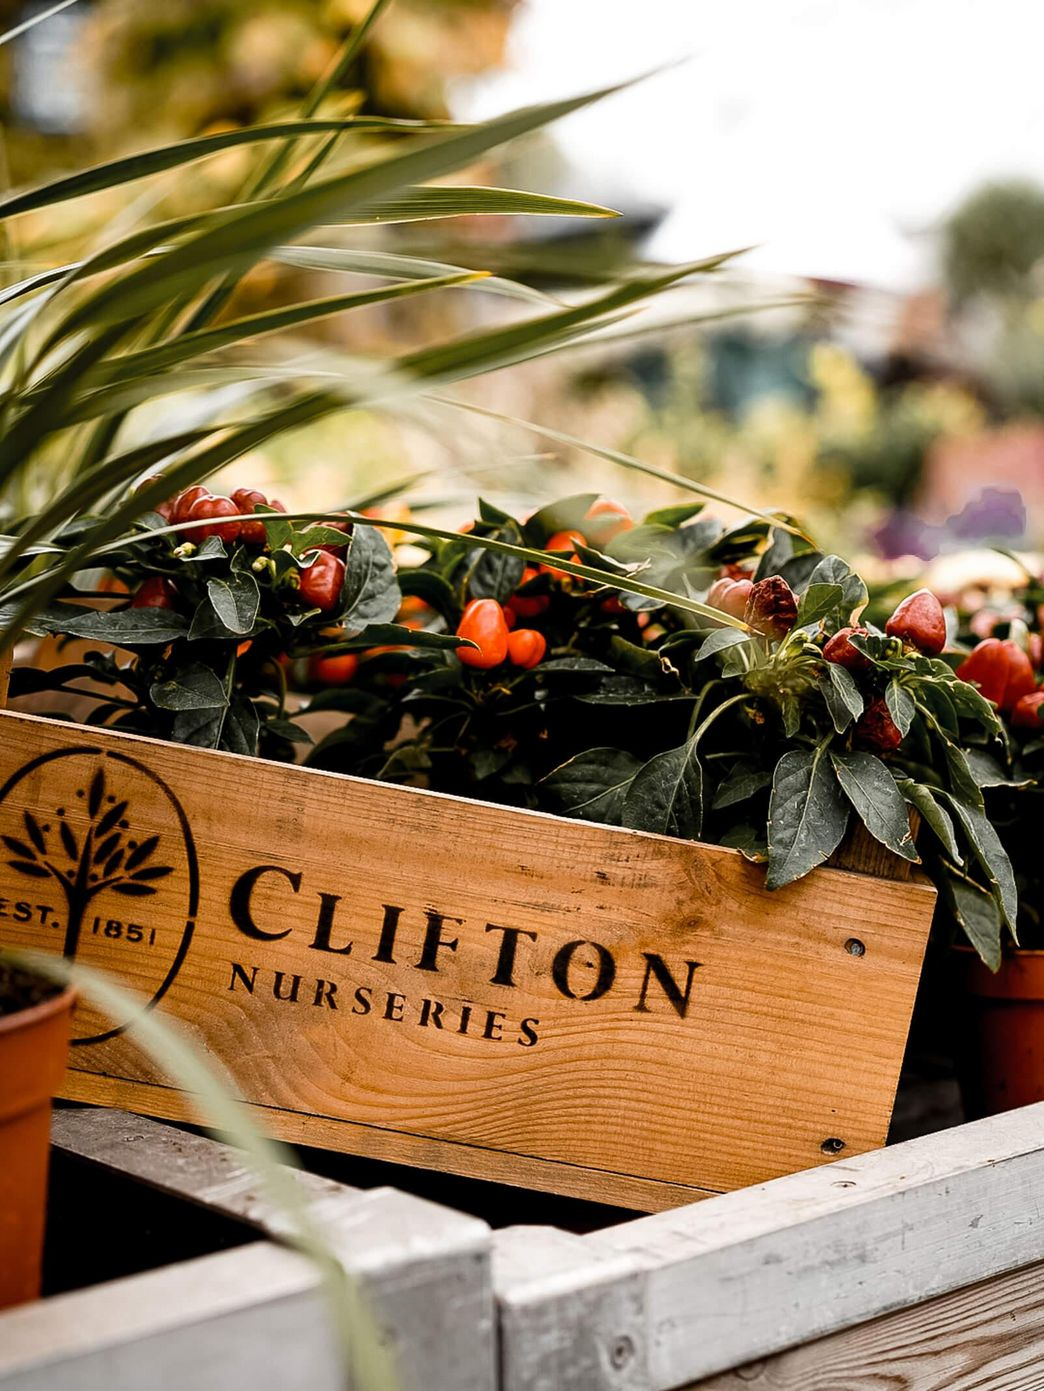 Clifton Nurseries London